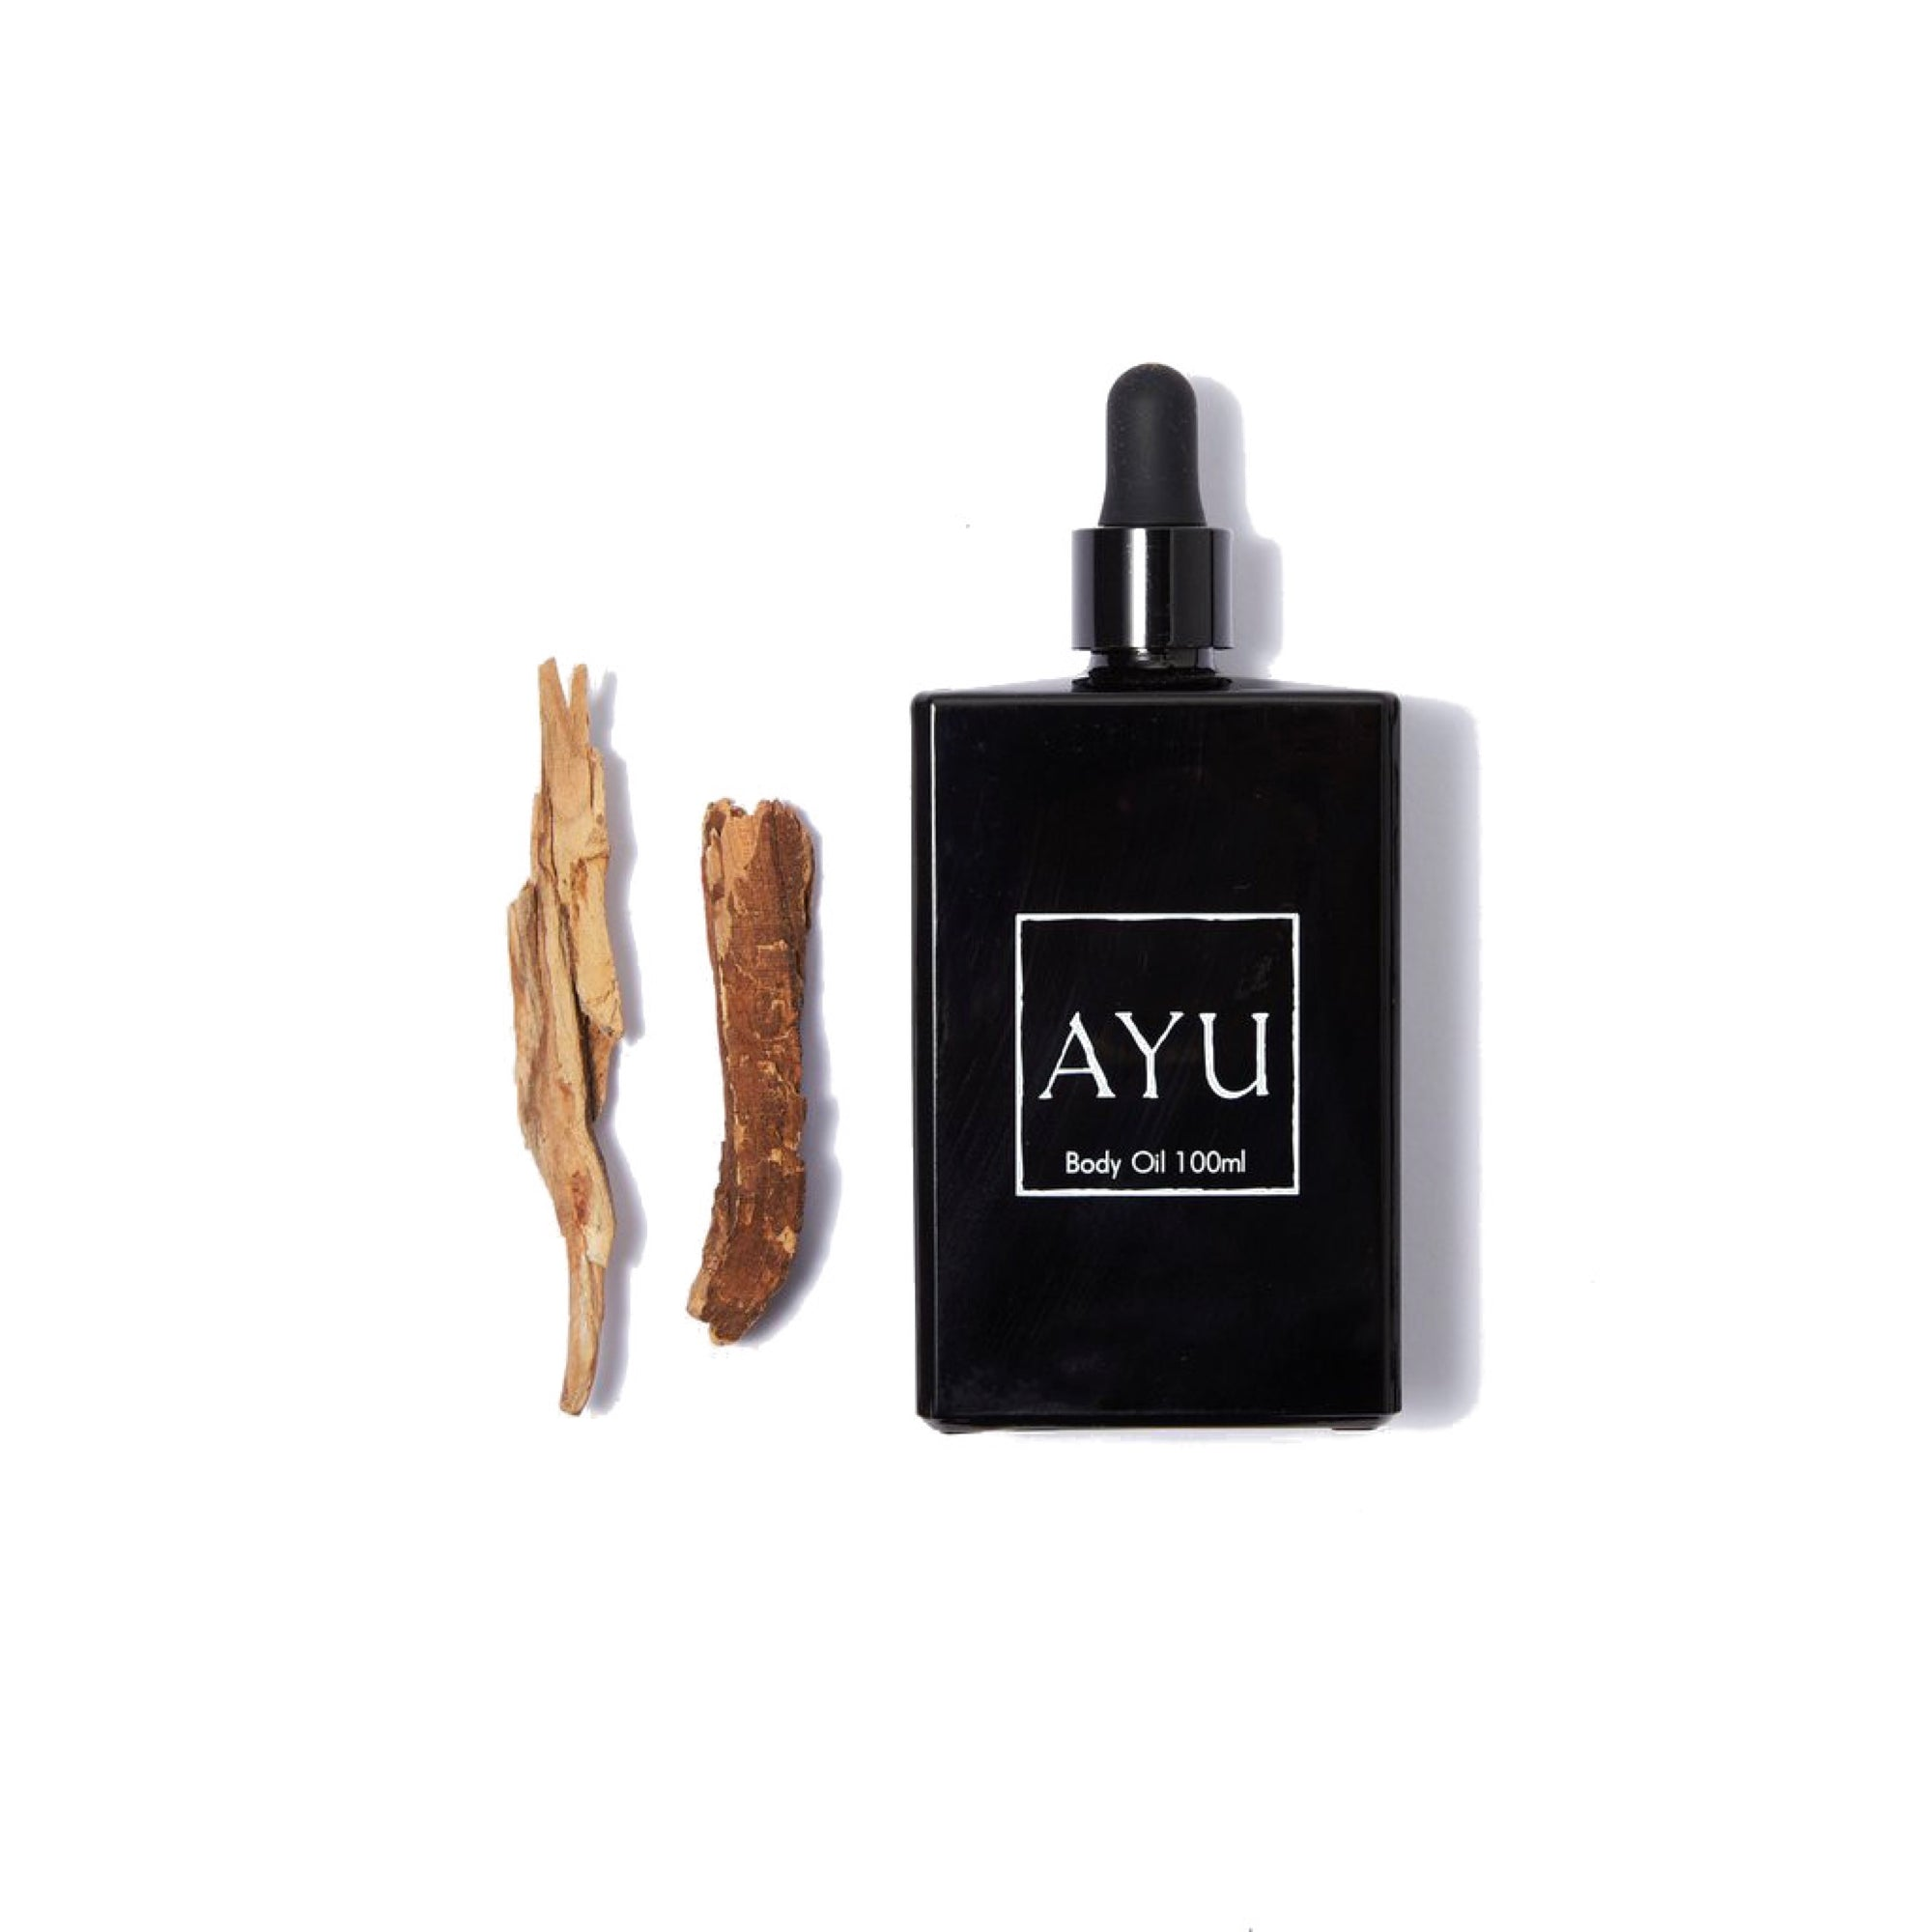 AYU Body Oil 100ml- Amber, Blue Chamomile & Sandalwood